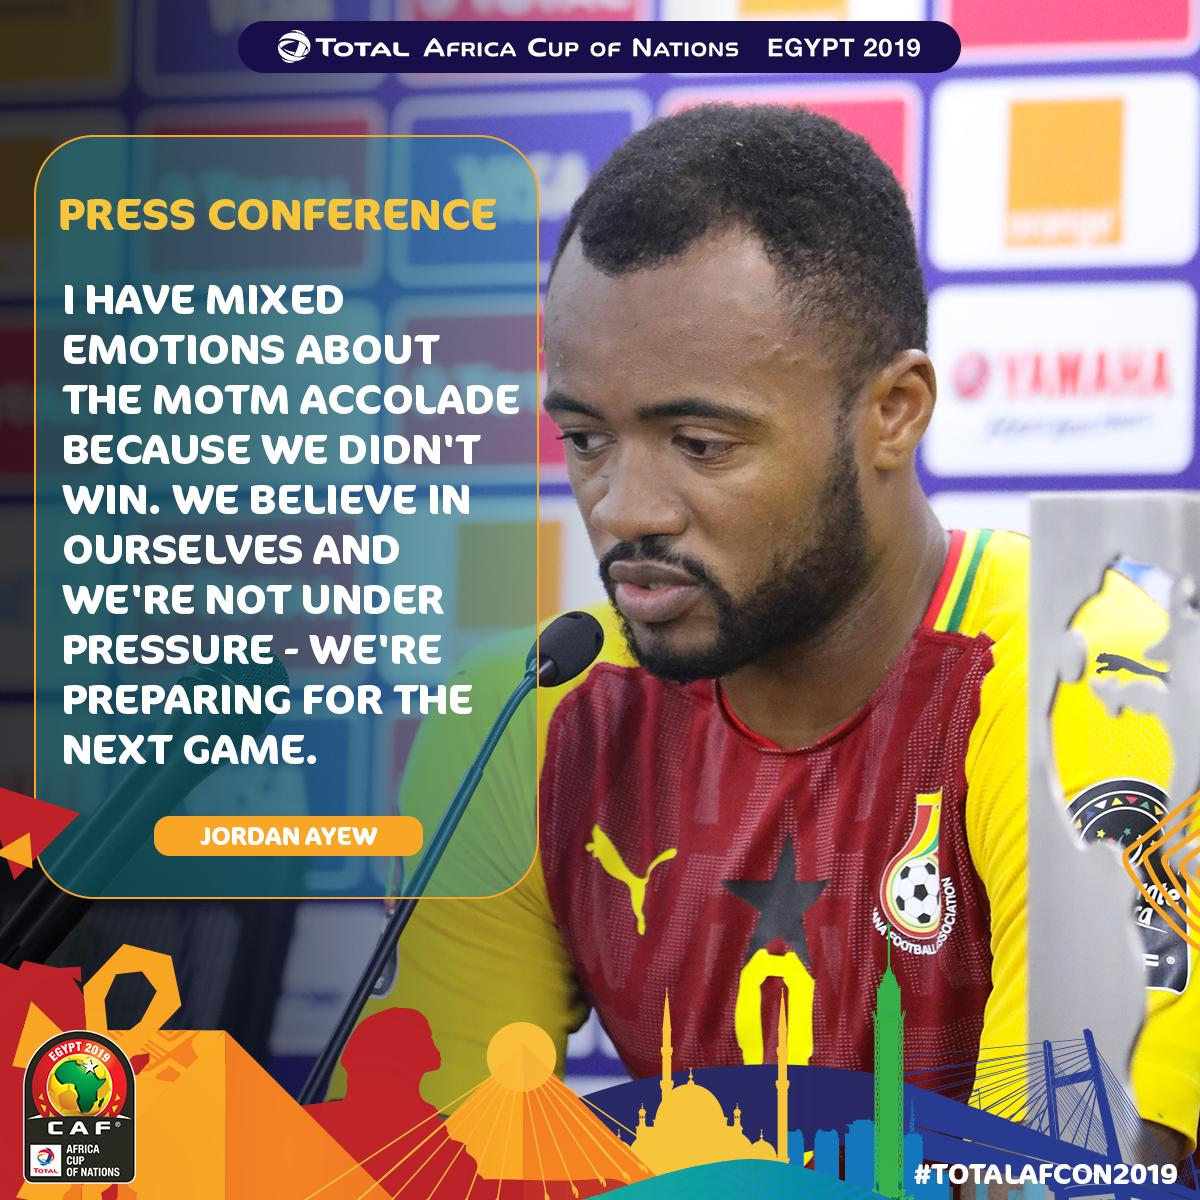 Ghana vs Benin (2:2) Highlights And All Goals, Ten-man Ghana held by Benin in Ismailia Egypt AFCON 2019